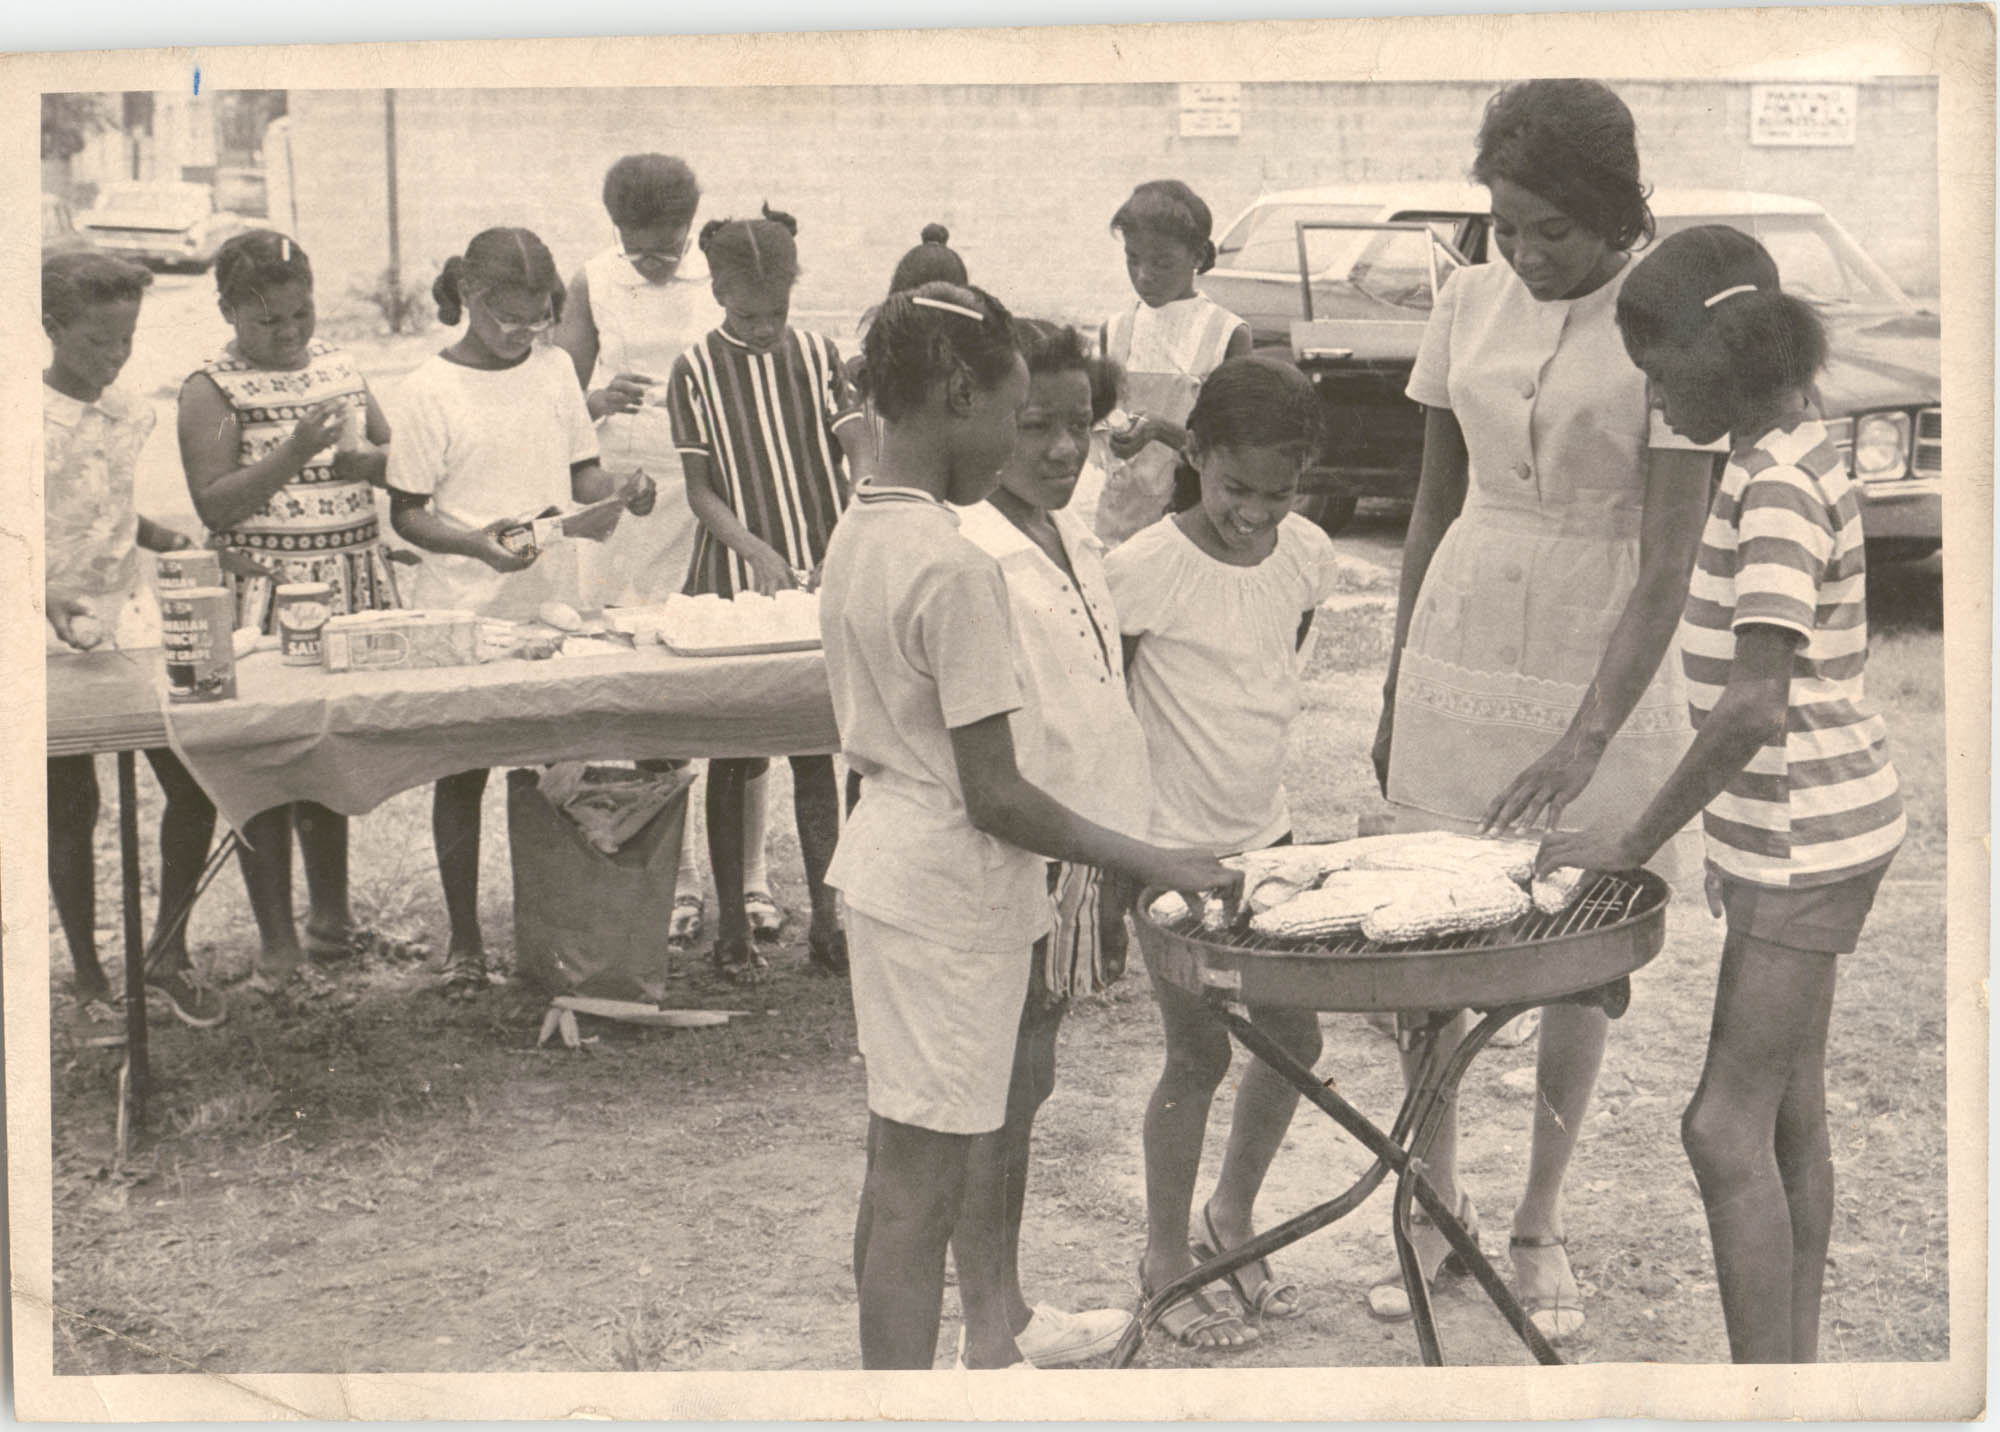 Photograph of Children Serving Food